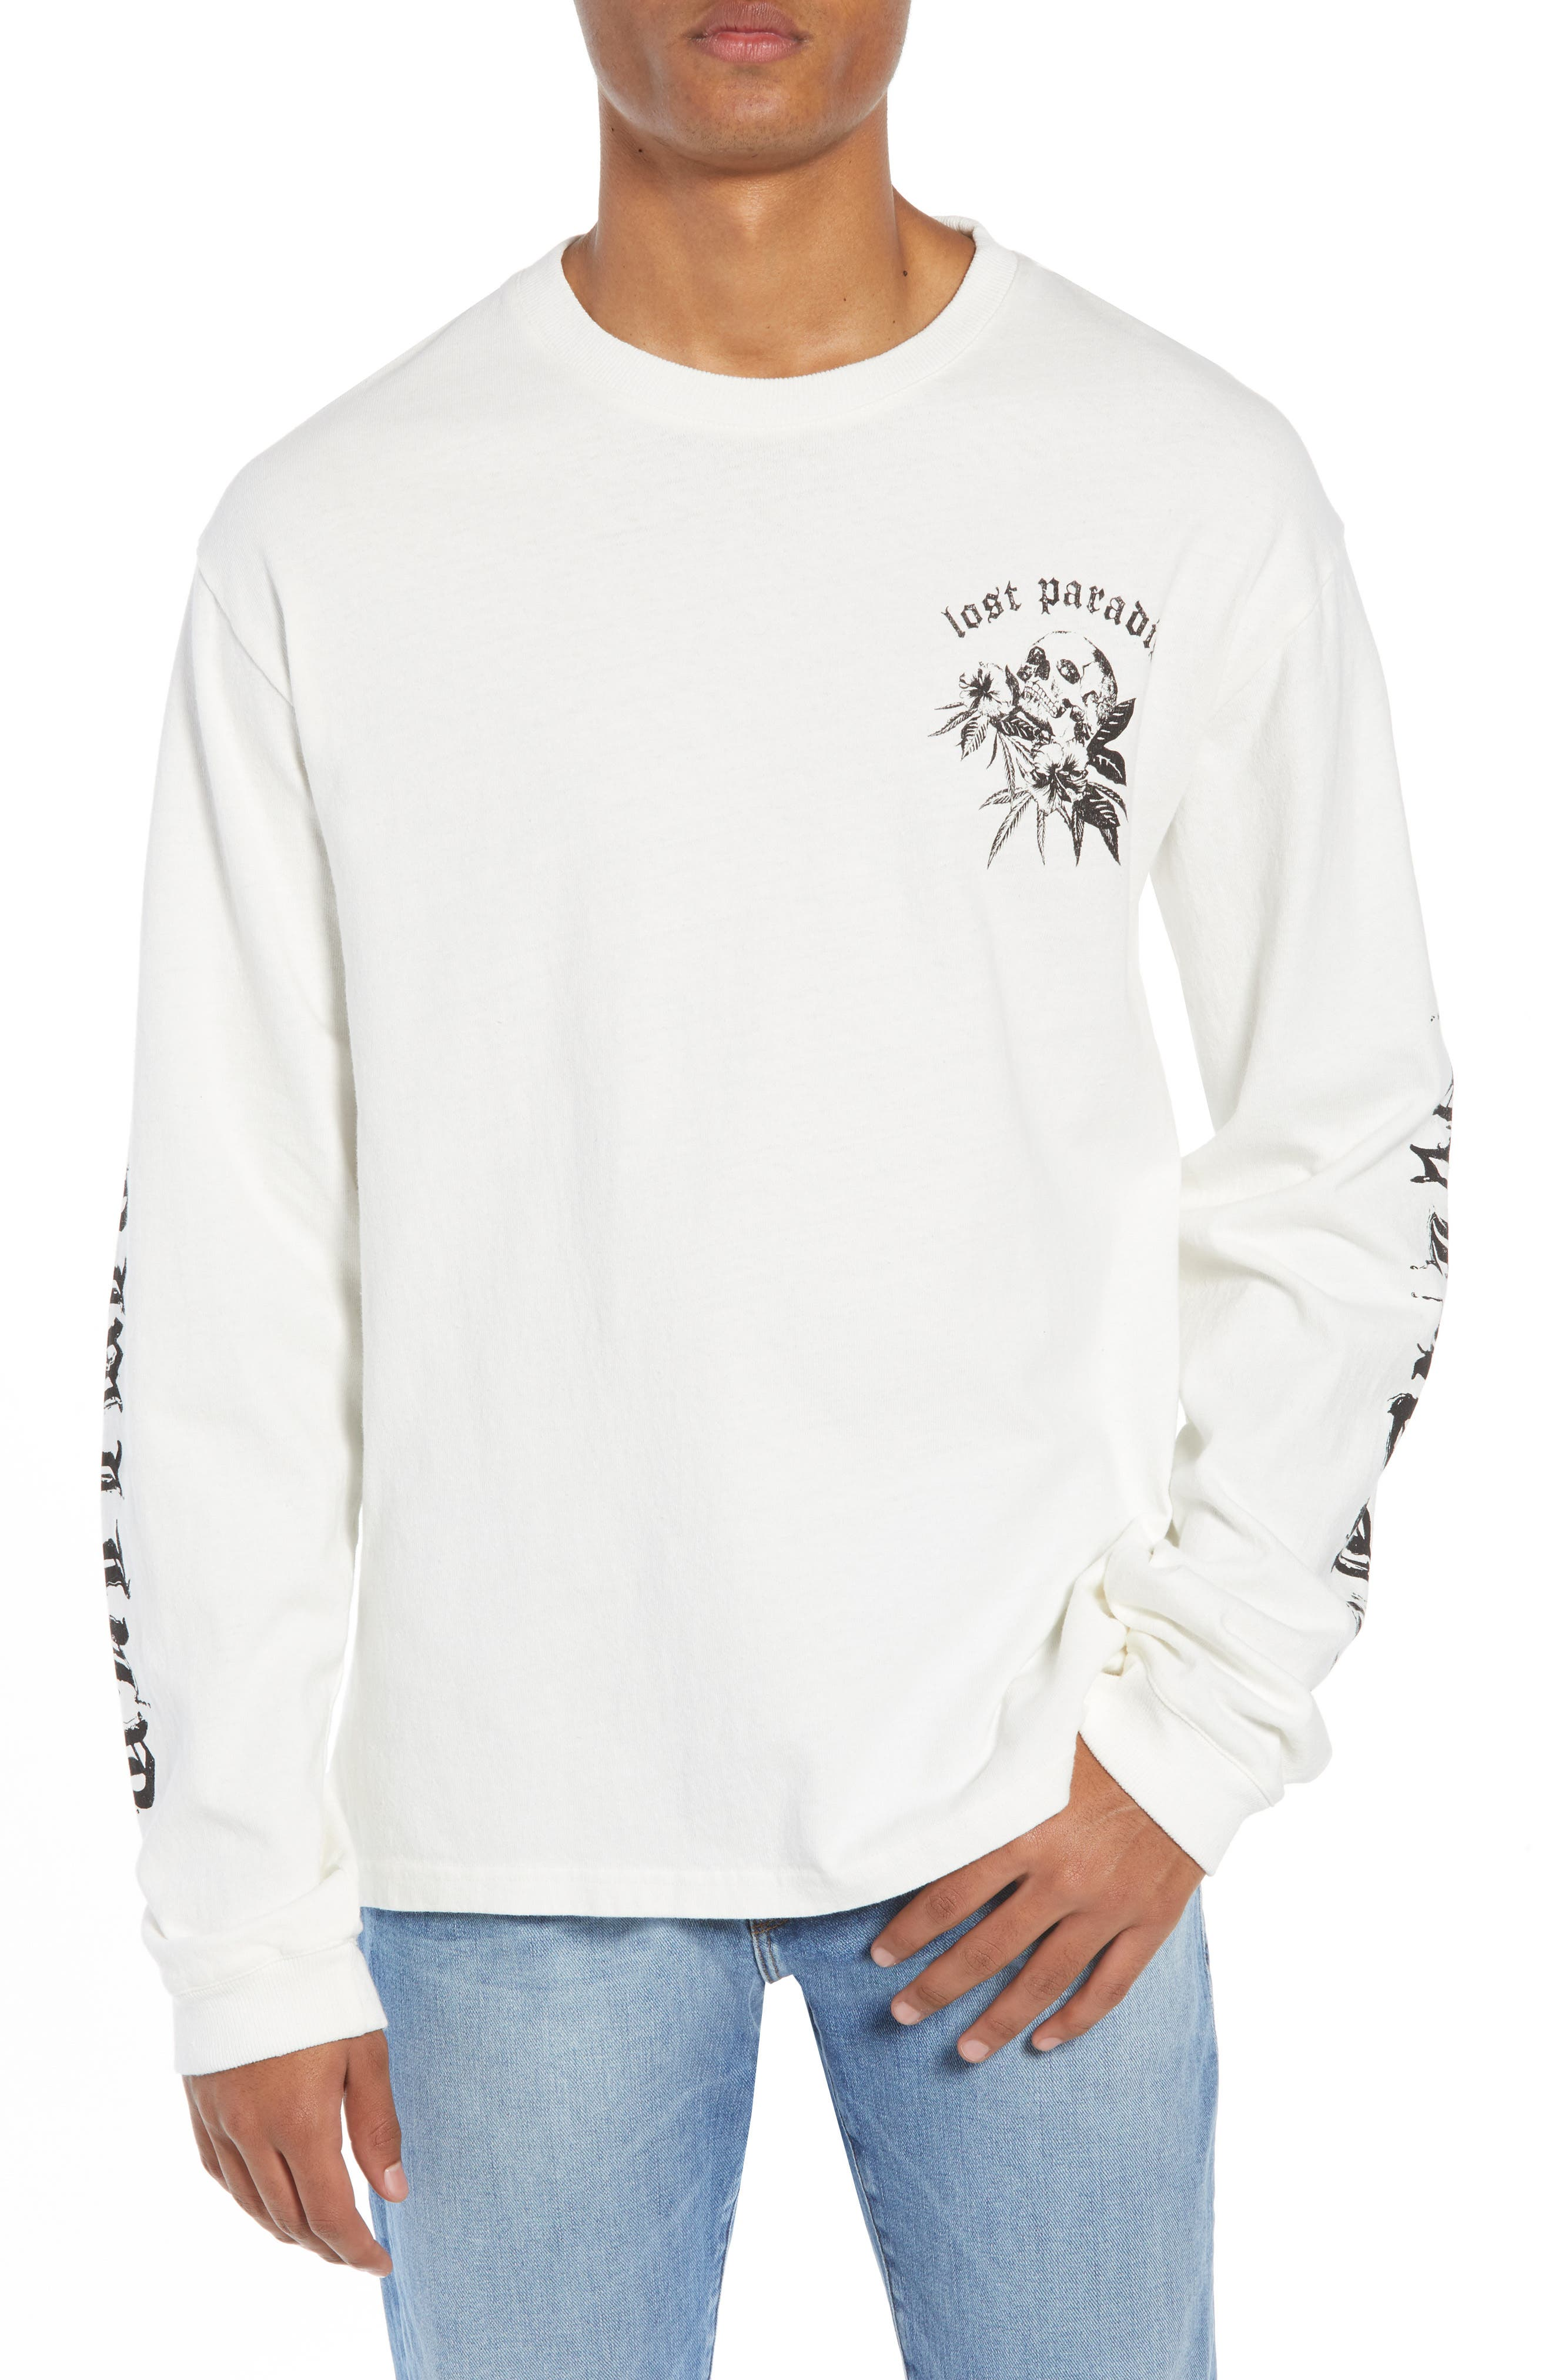 THE KOOPLES Lost Paradise Graphic Long Sleeve Tee in Off White